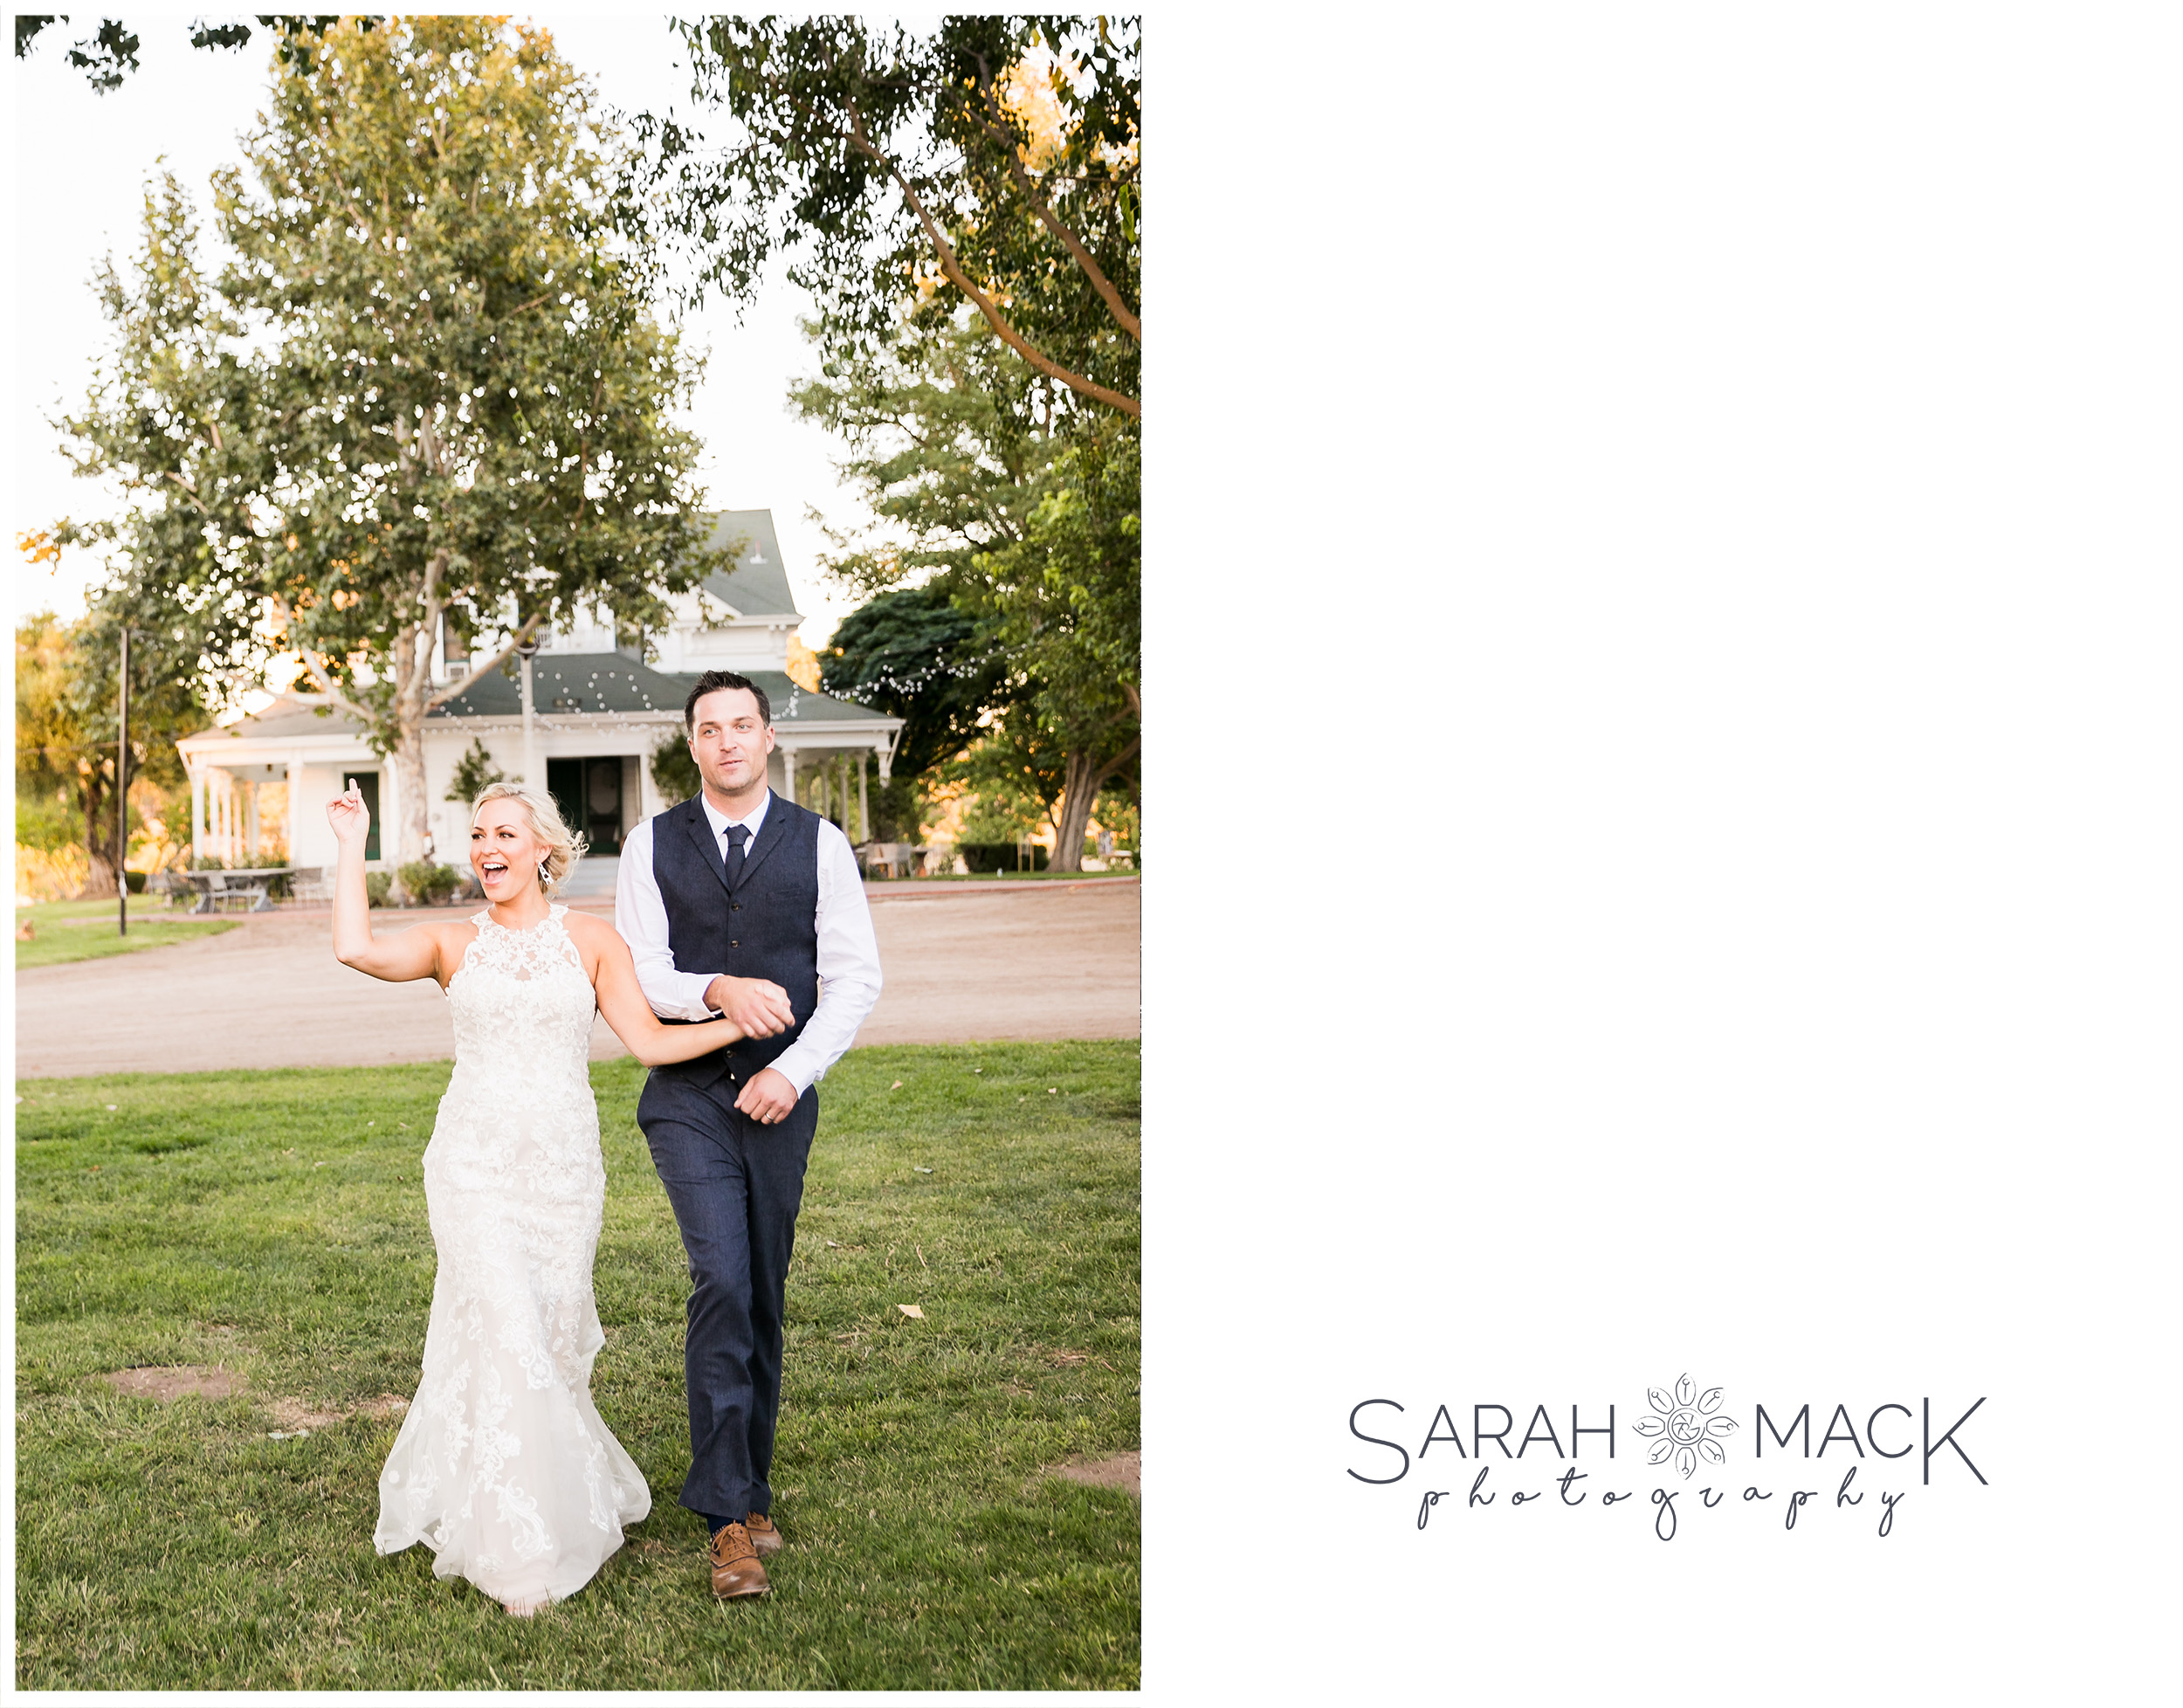 MA-Chandler-Ranch-Paso-Robles-Wedding-Photography-72.jpg